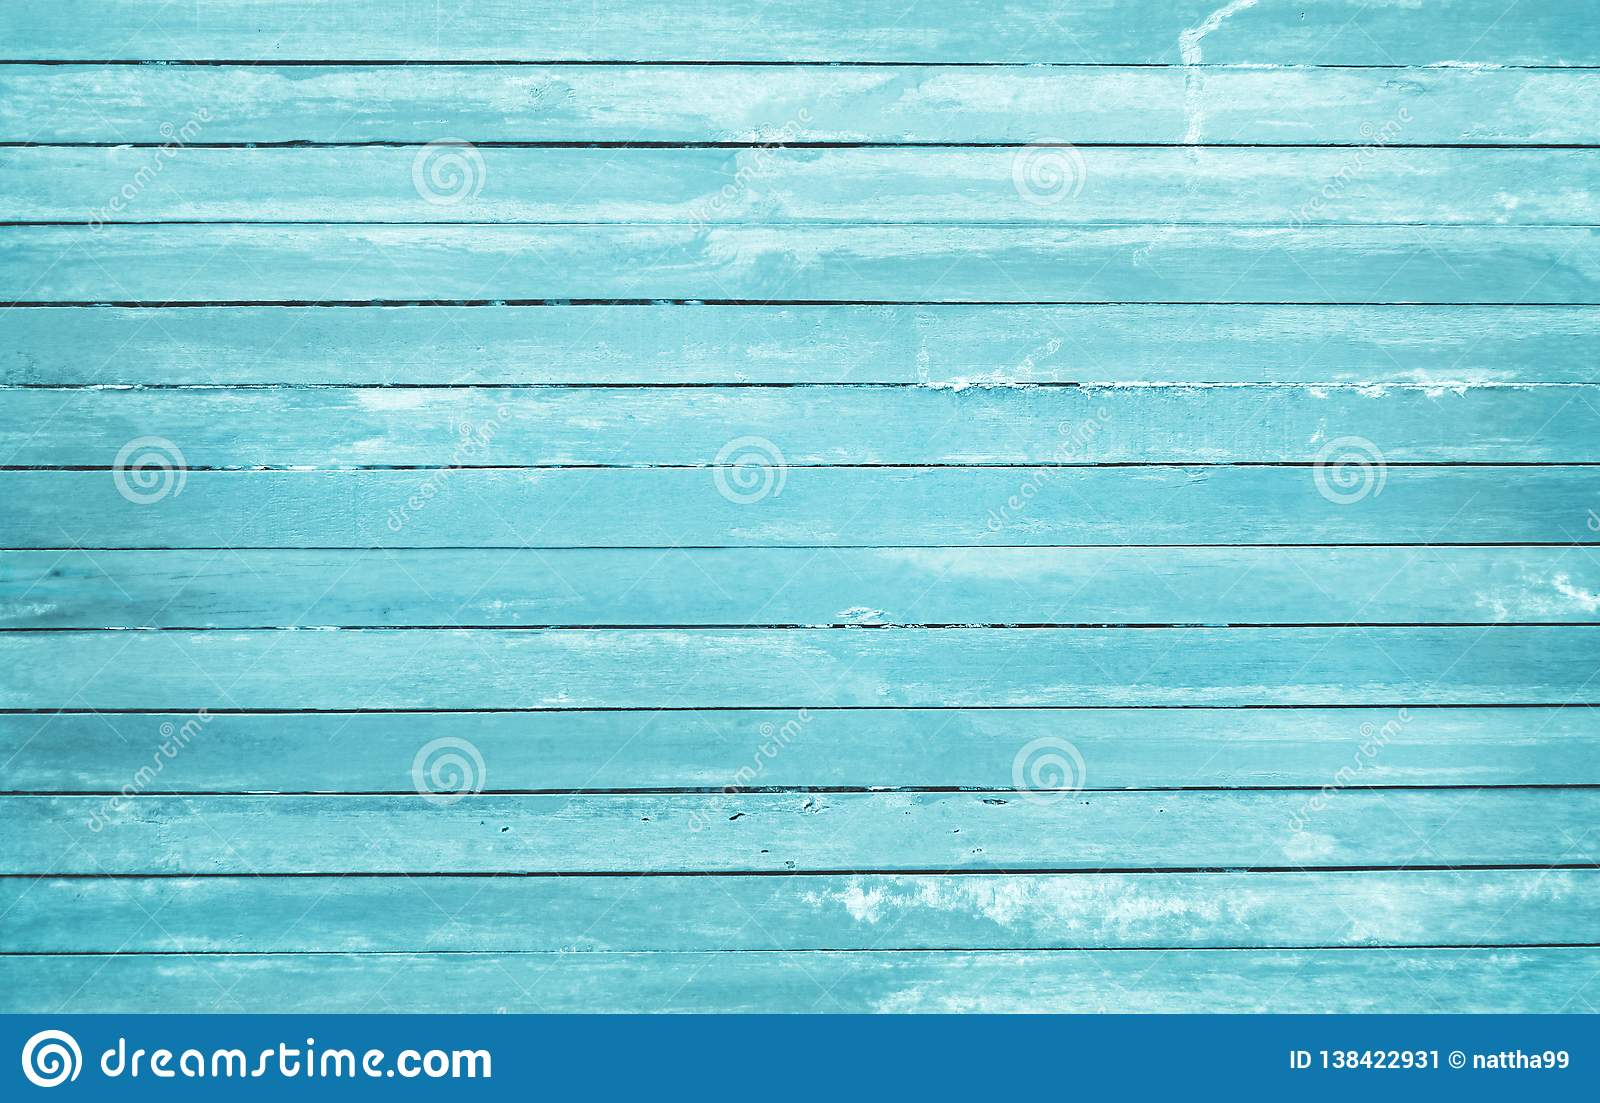 Vintage painted wooden wall background, texture of blue pastel color with natural patterns for design art work